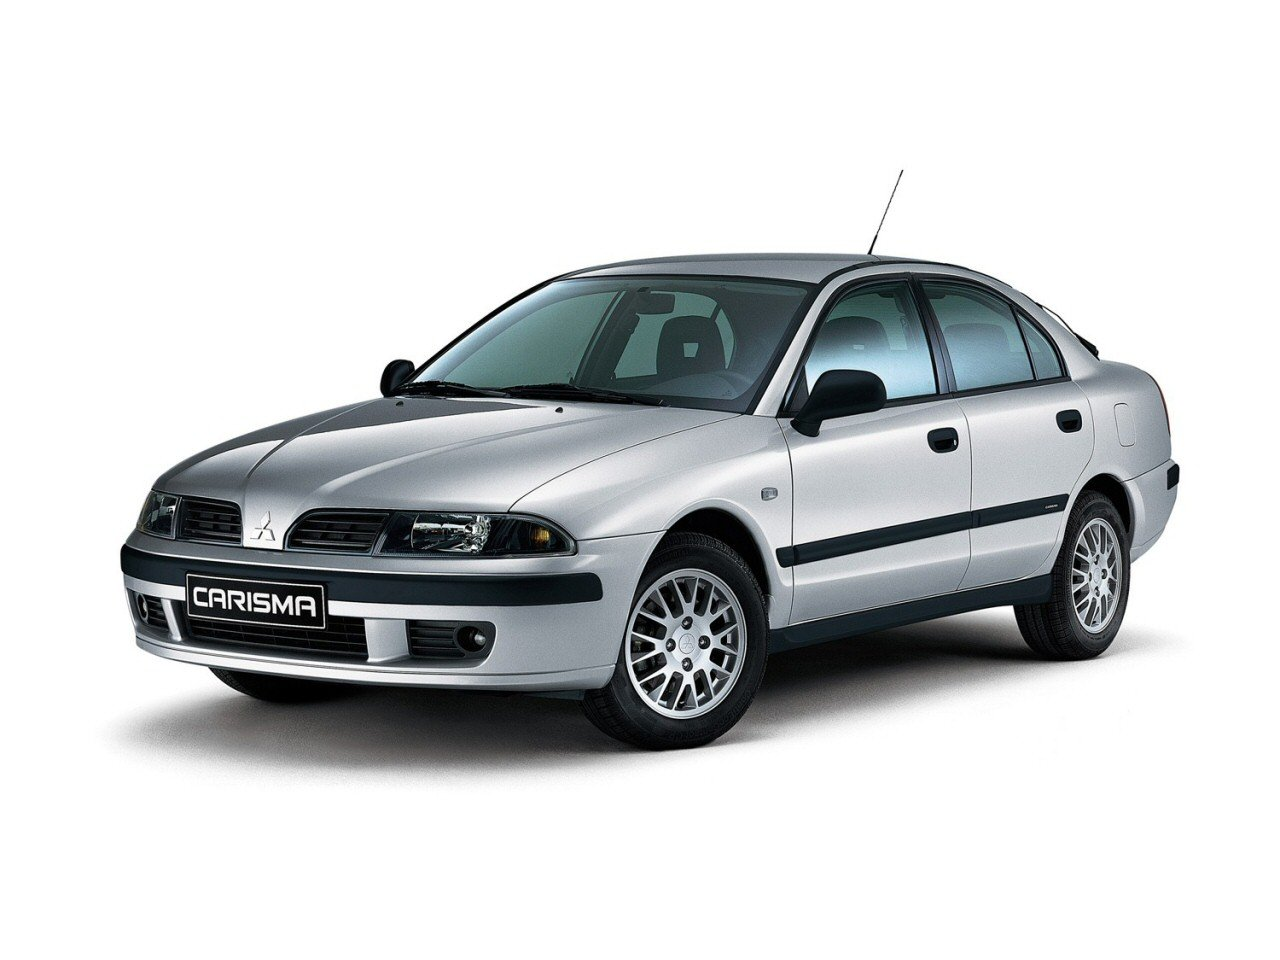 2002 Mitsubishi Carisma hatchback   pictures, information and